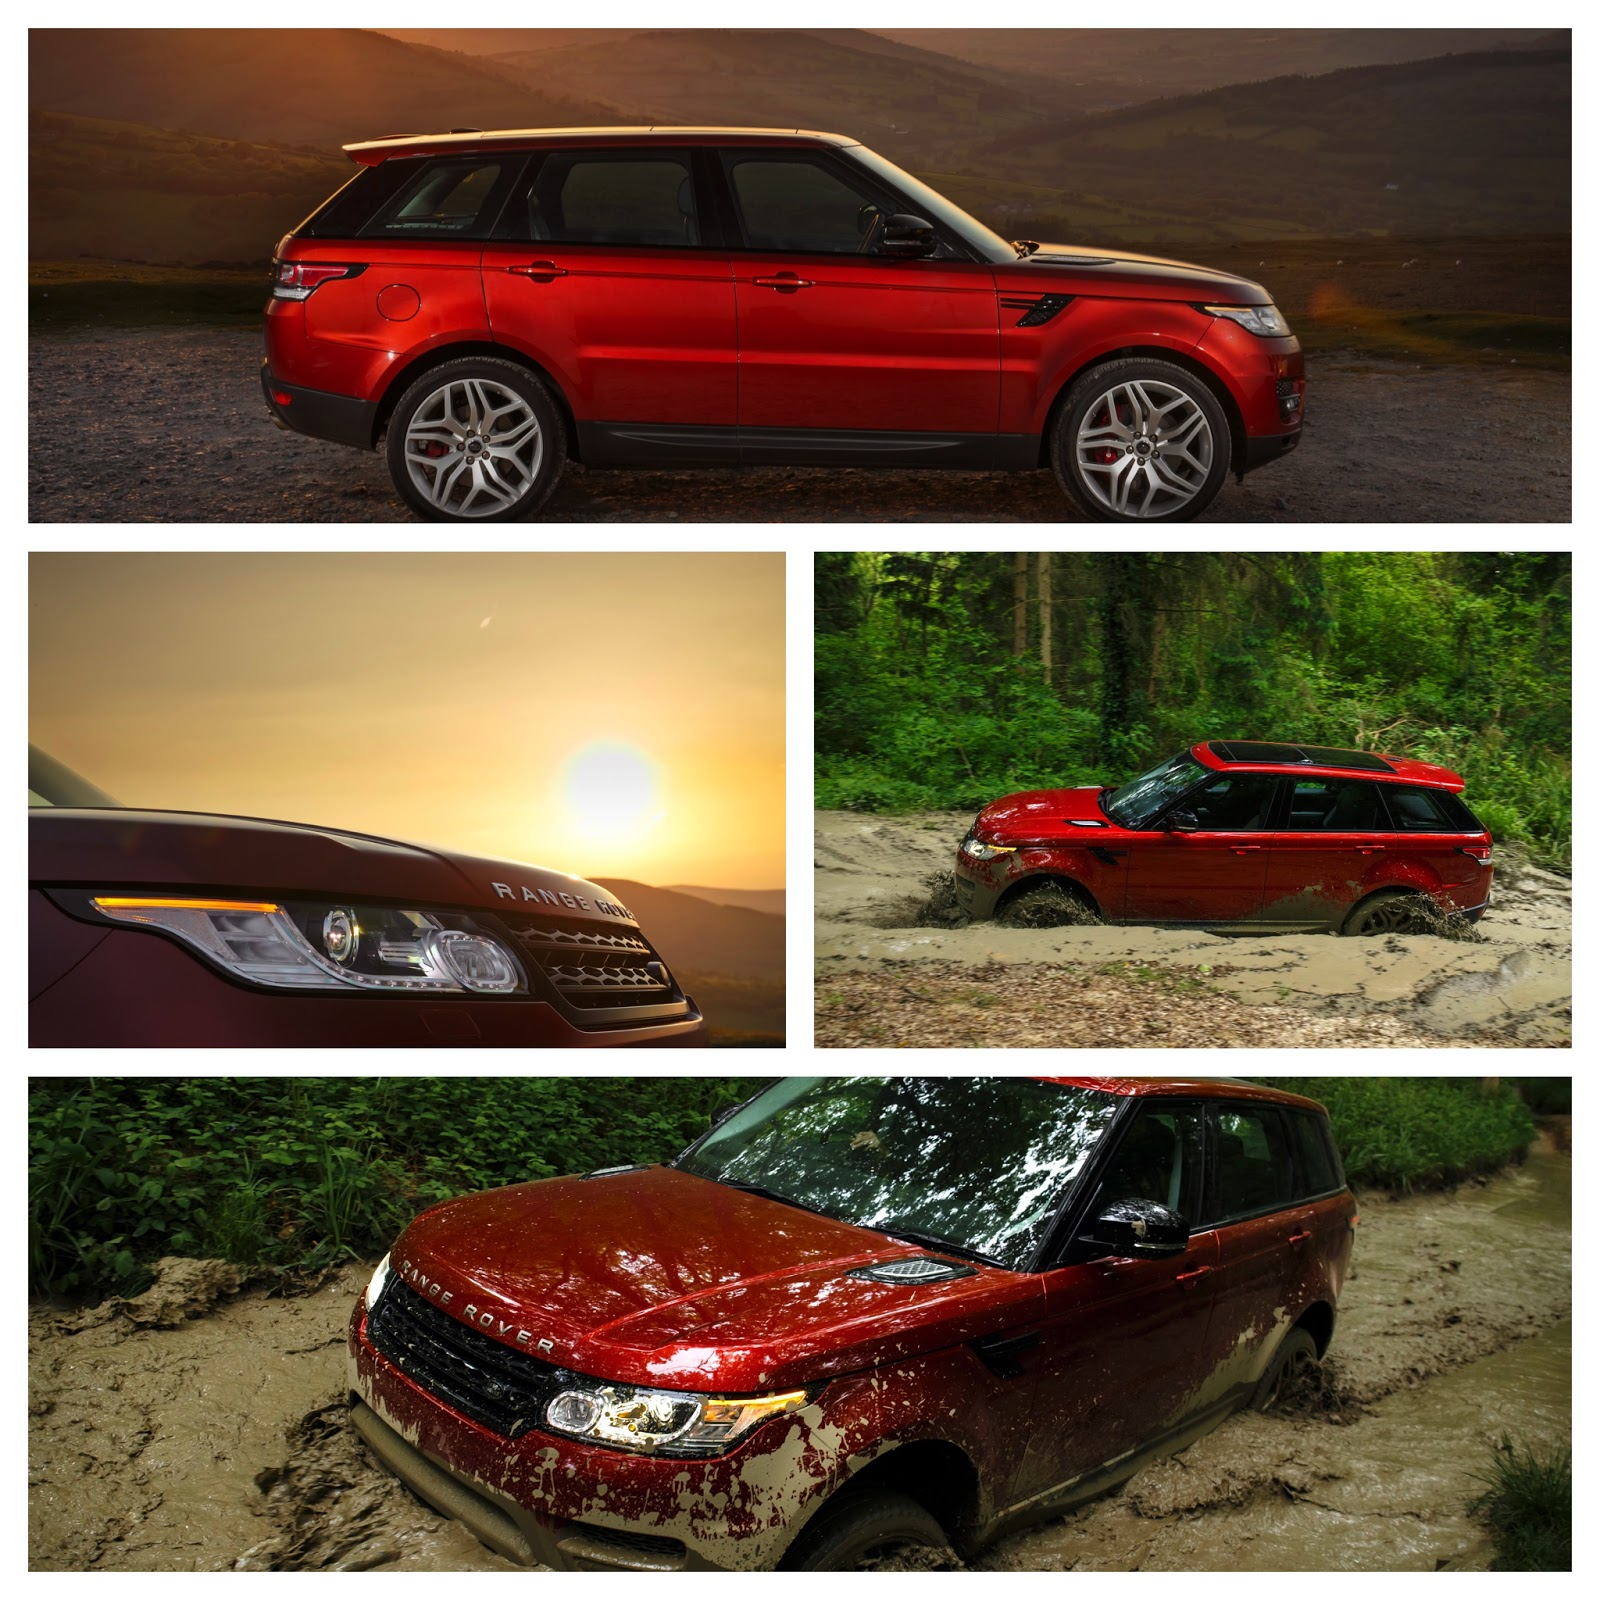 The New Range Rover Sport // Larger Size Evoque